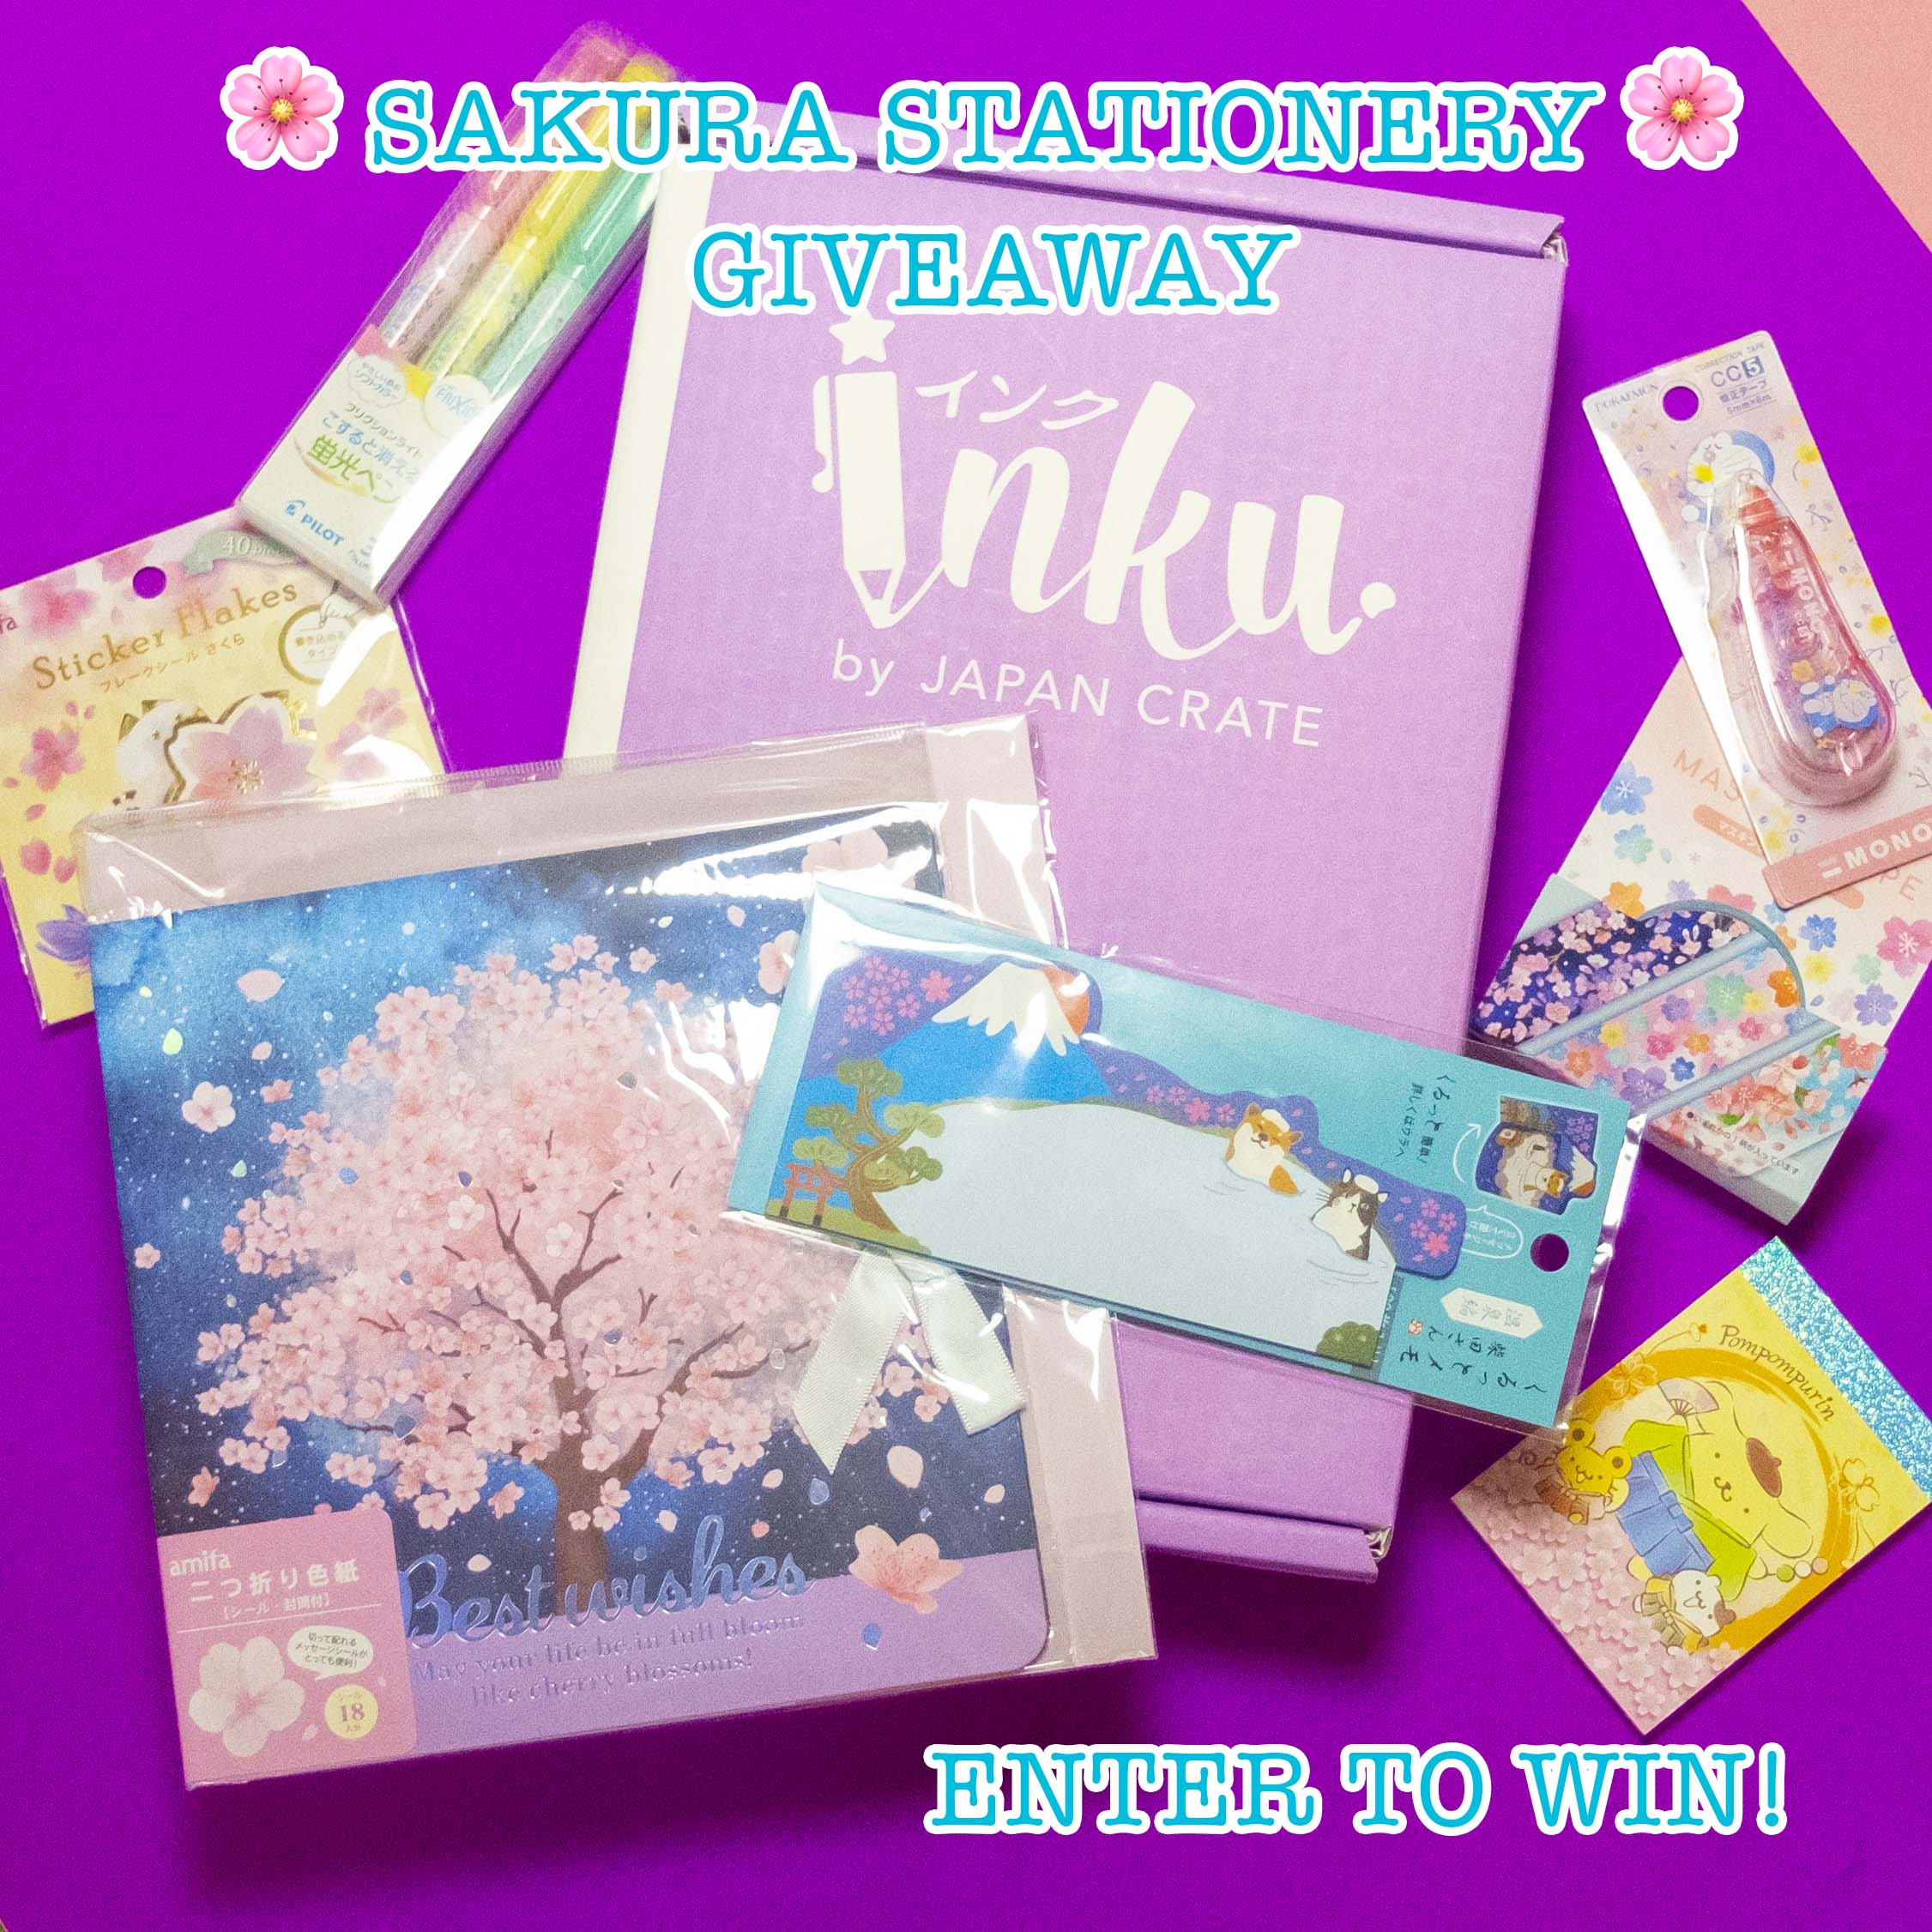 Inku Crate x March 2021 Crate Giveaway Giveaway Image